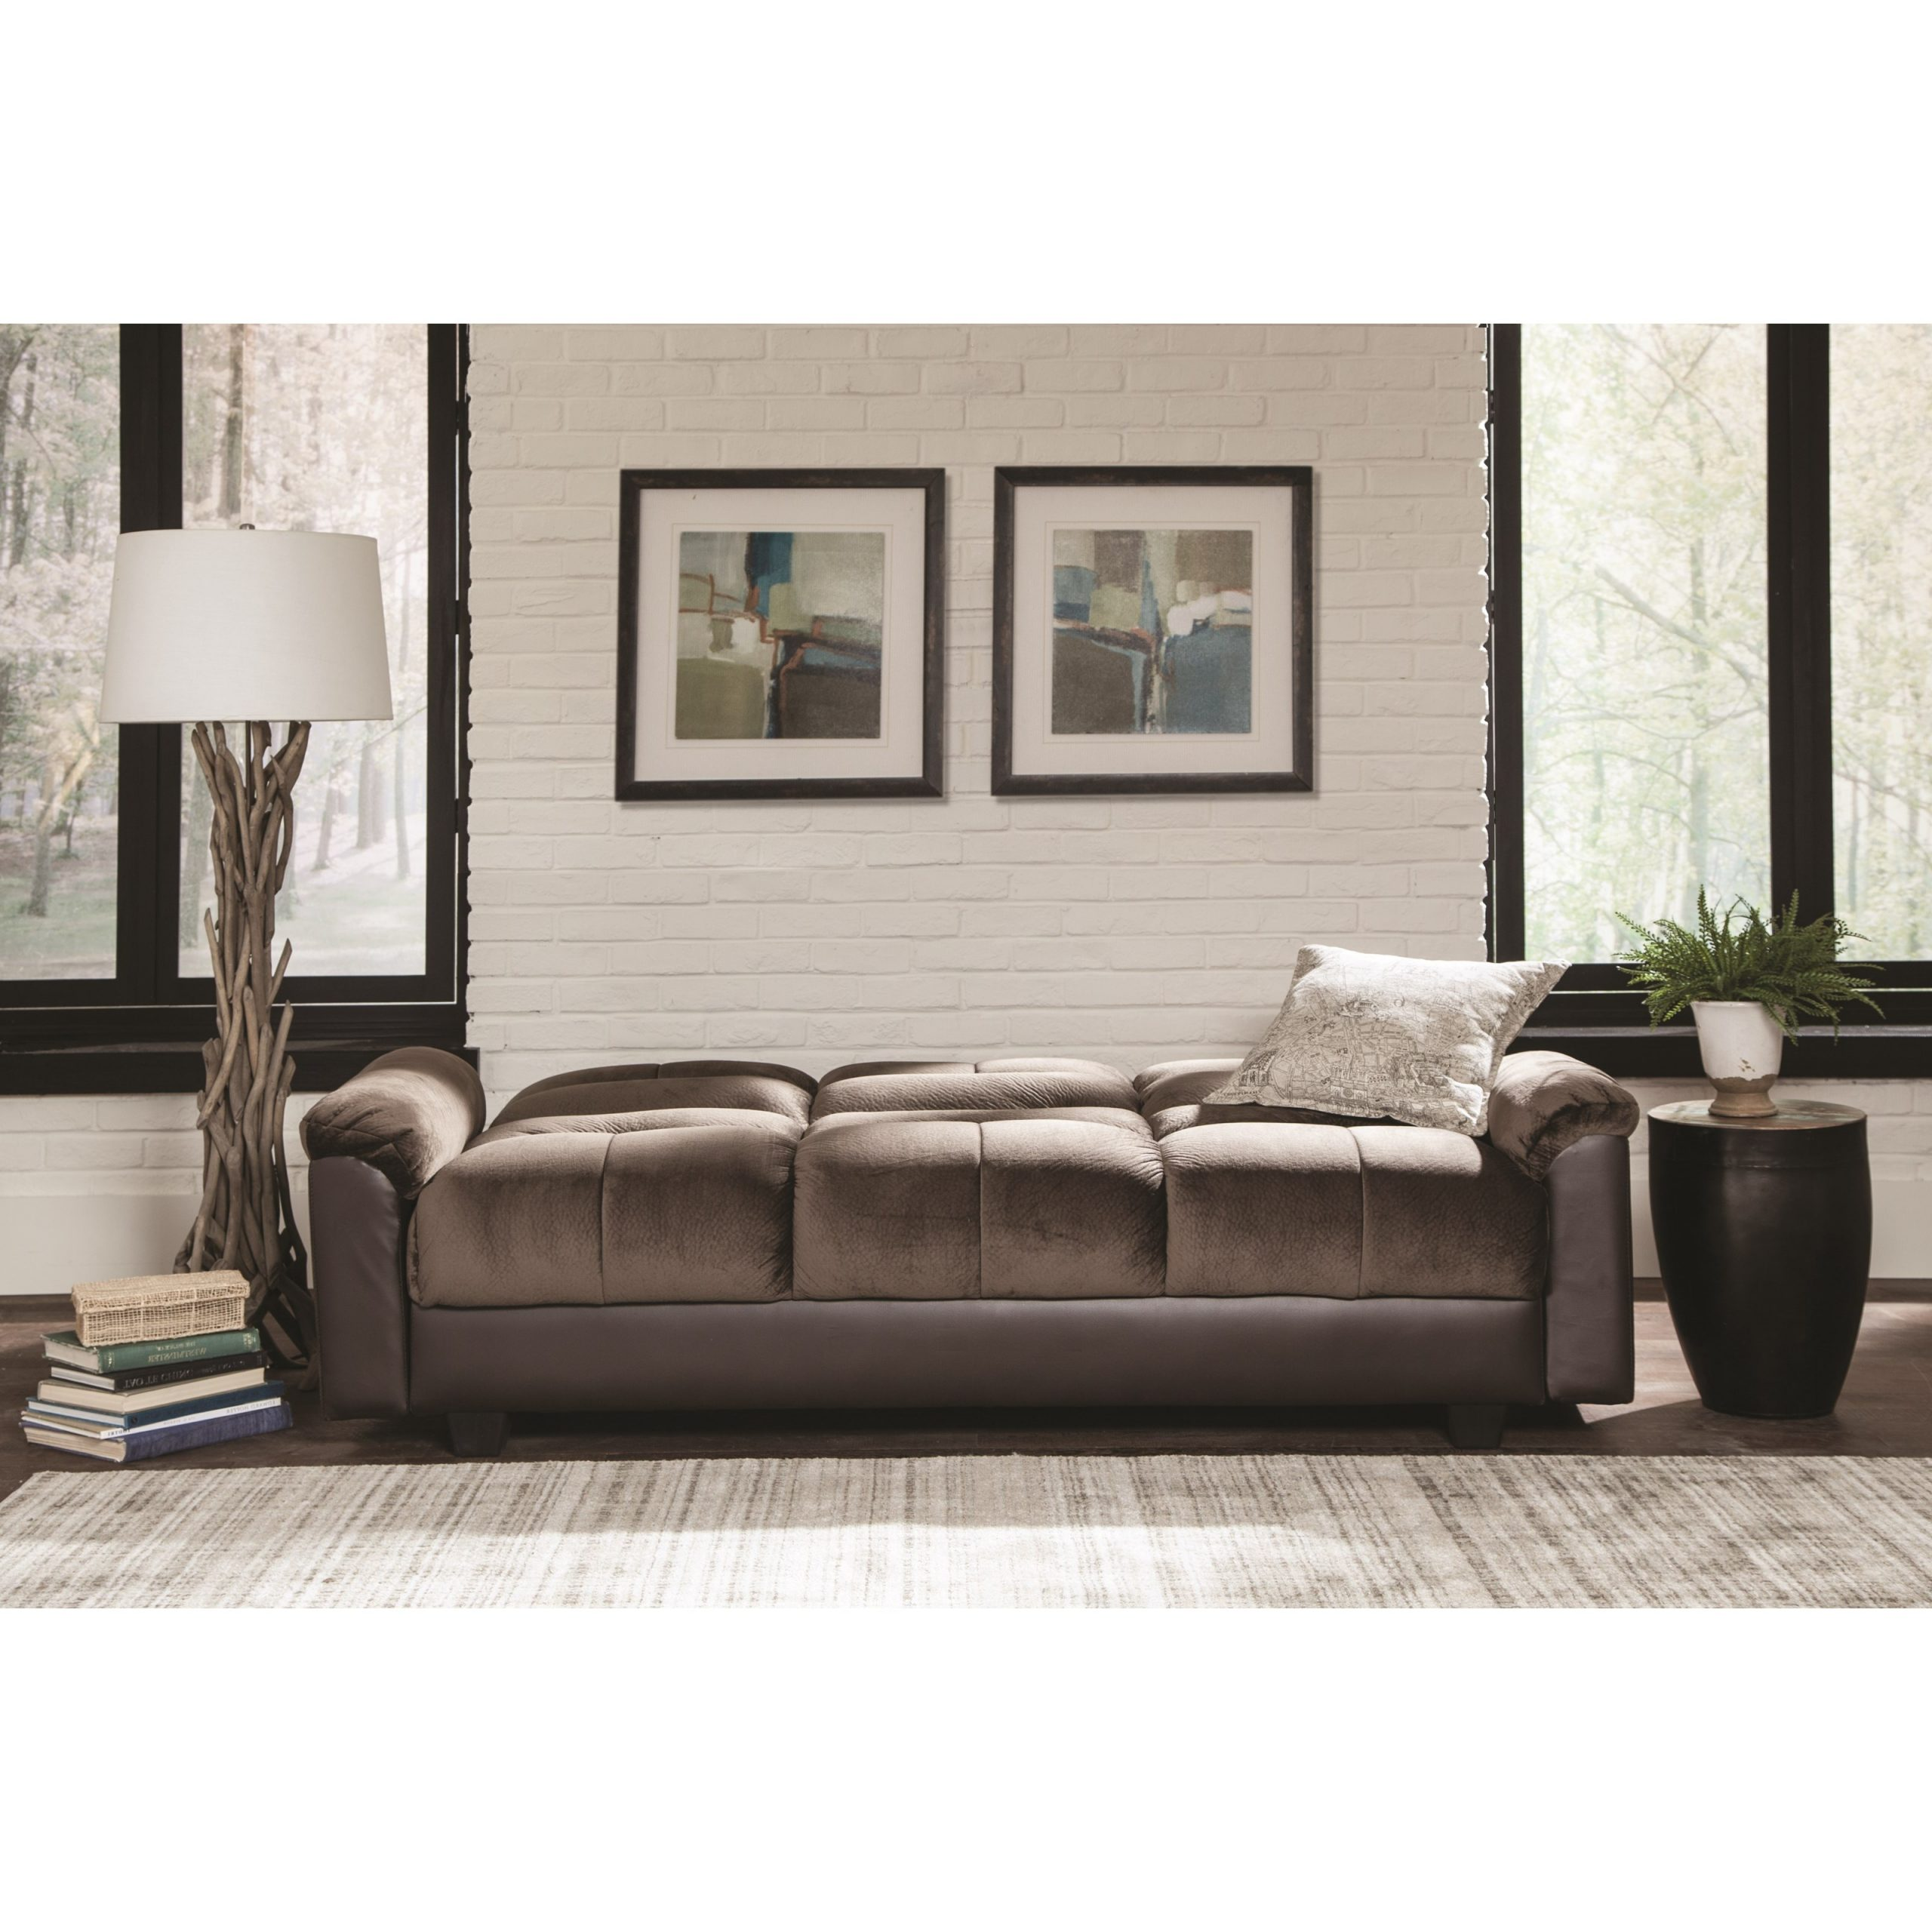 Celine Sectional Futon Sofas With Storage Reclining Couch Throughout Well Known Sofa Beds And Futons Two Tone Sofa Bed With Storage (View 15 of 20)